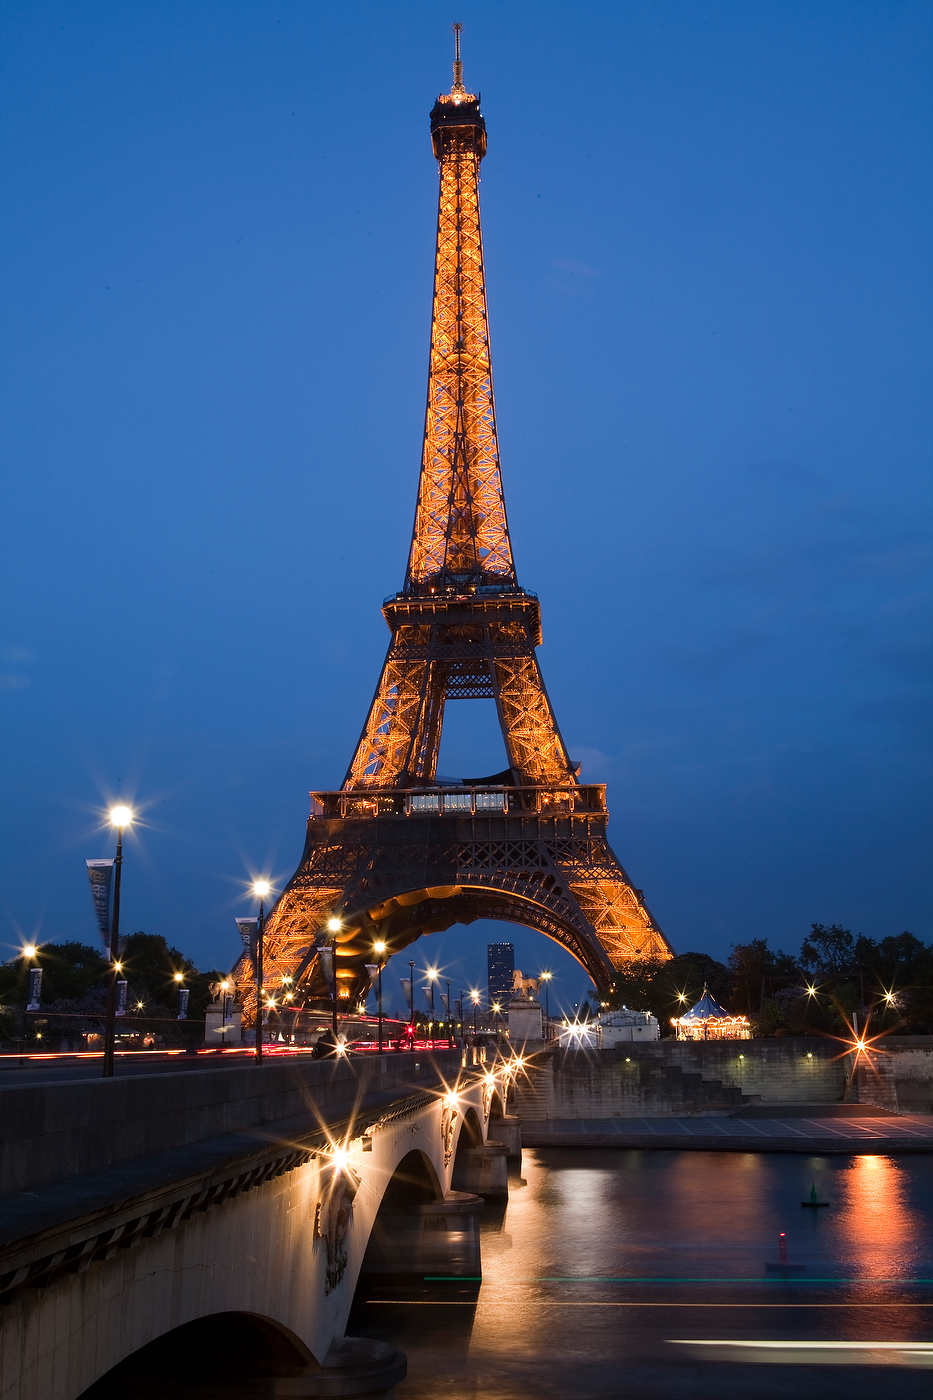 Eiffel Tower, at dusk.